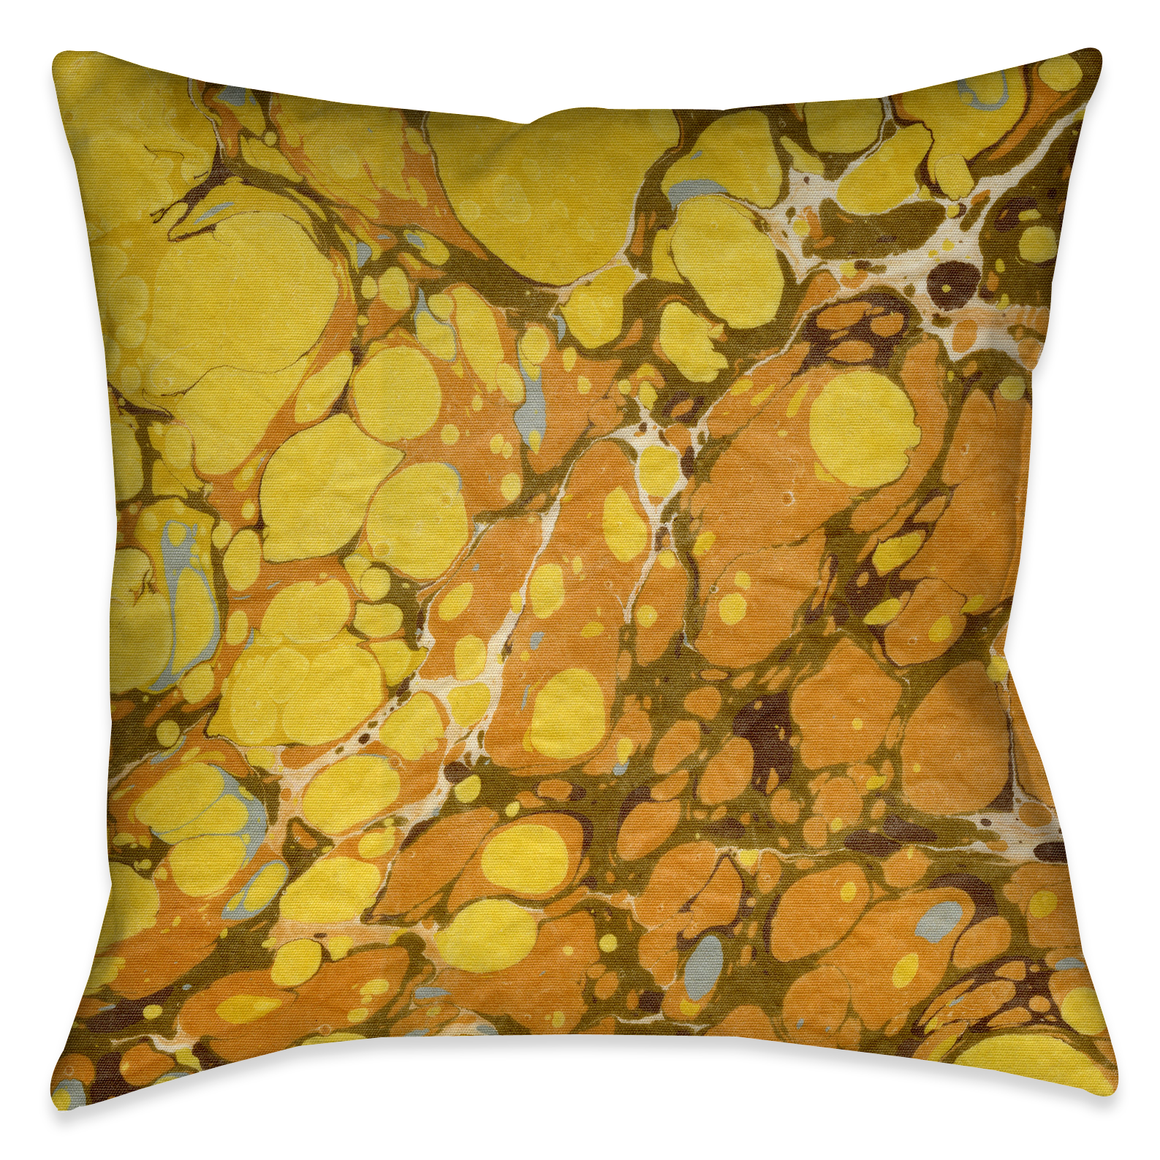 Golden Mustard Marble Decorative Pillow